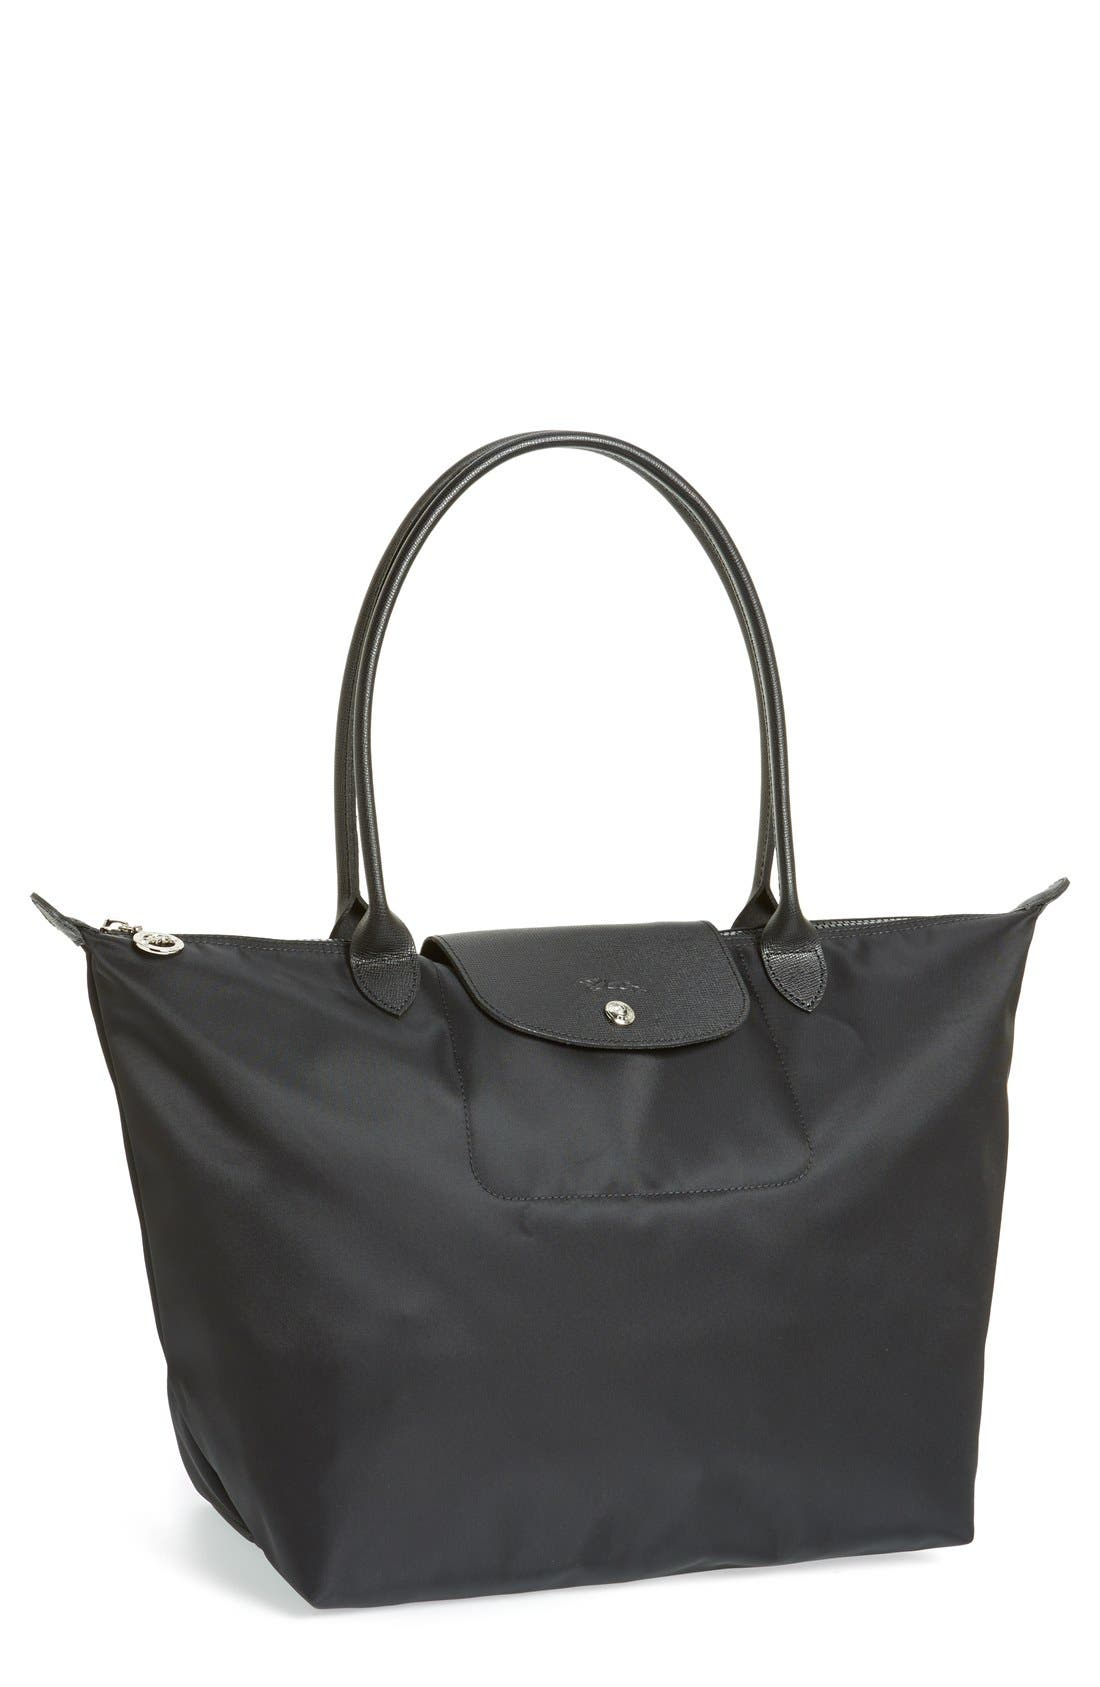 Main Image - Longchamp 'Large Le Pliage Neo' Nylon Tote